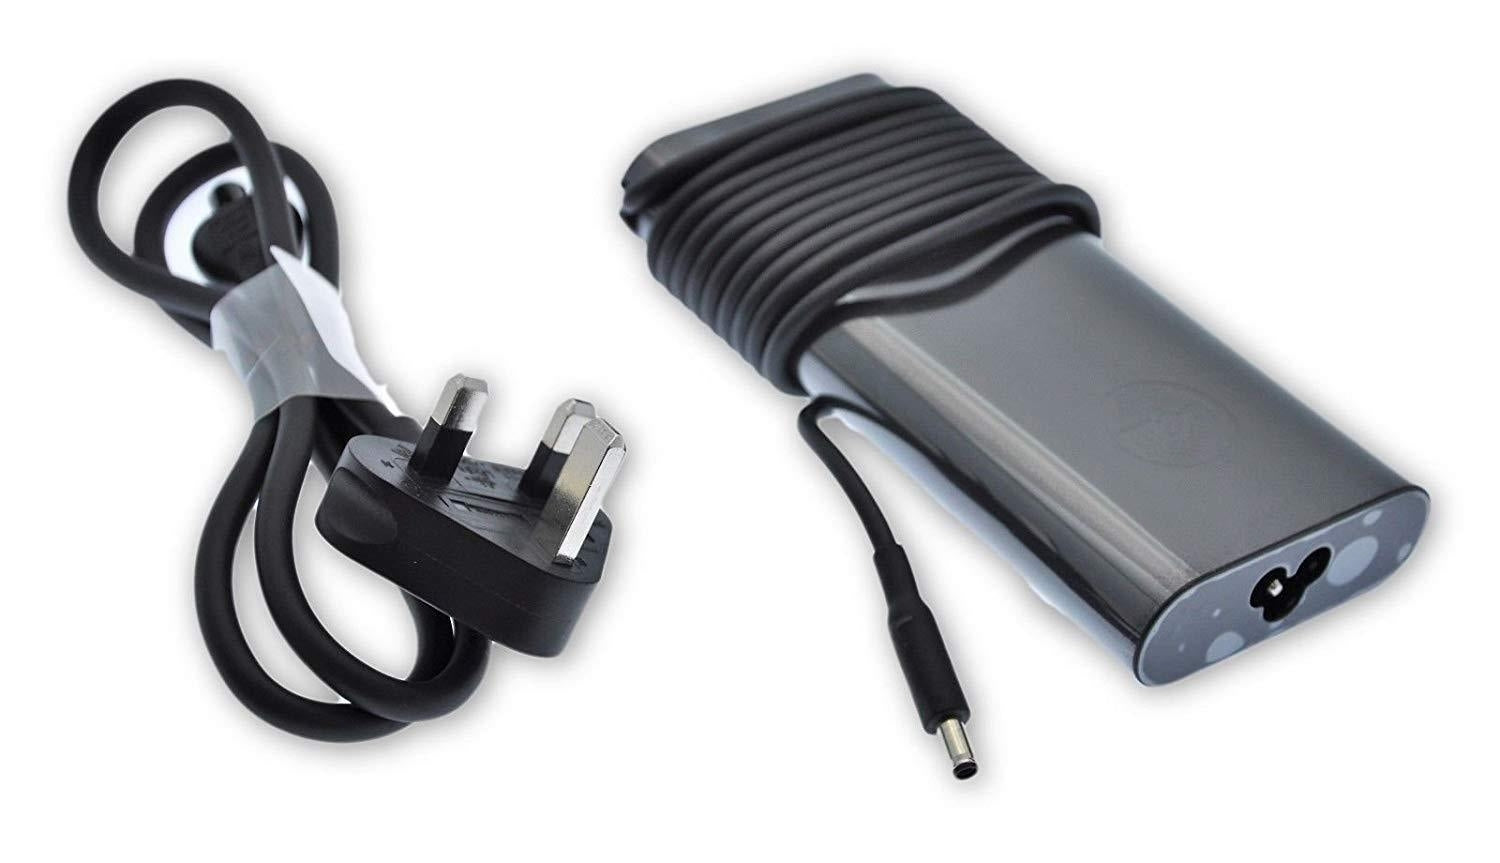 Dell XPS Compatible 19.5V 6.67A 130W Charger 4.5mm X 3.0mm With Power Cable